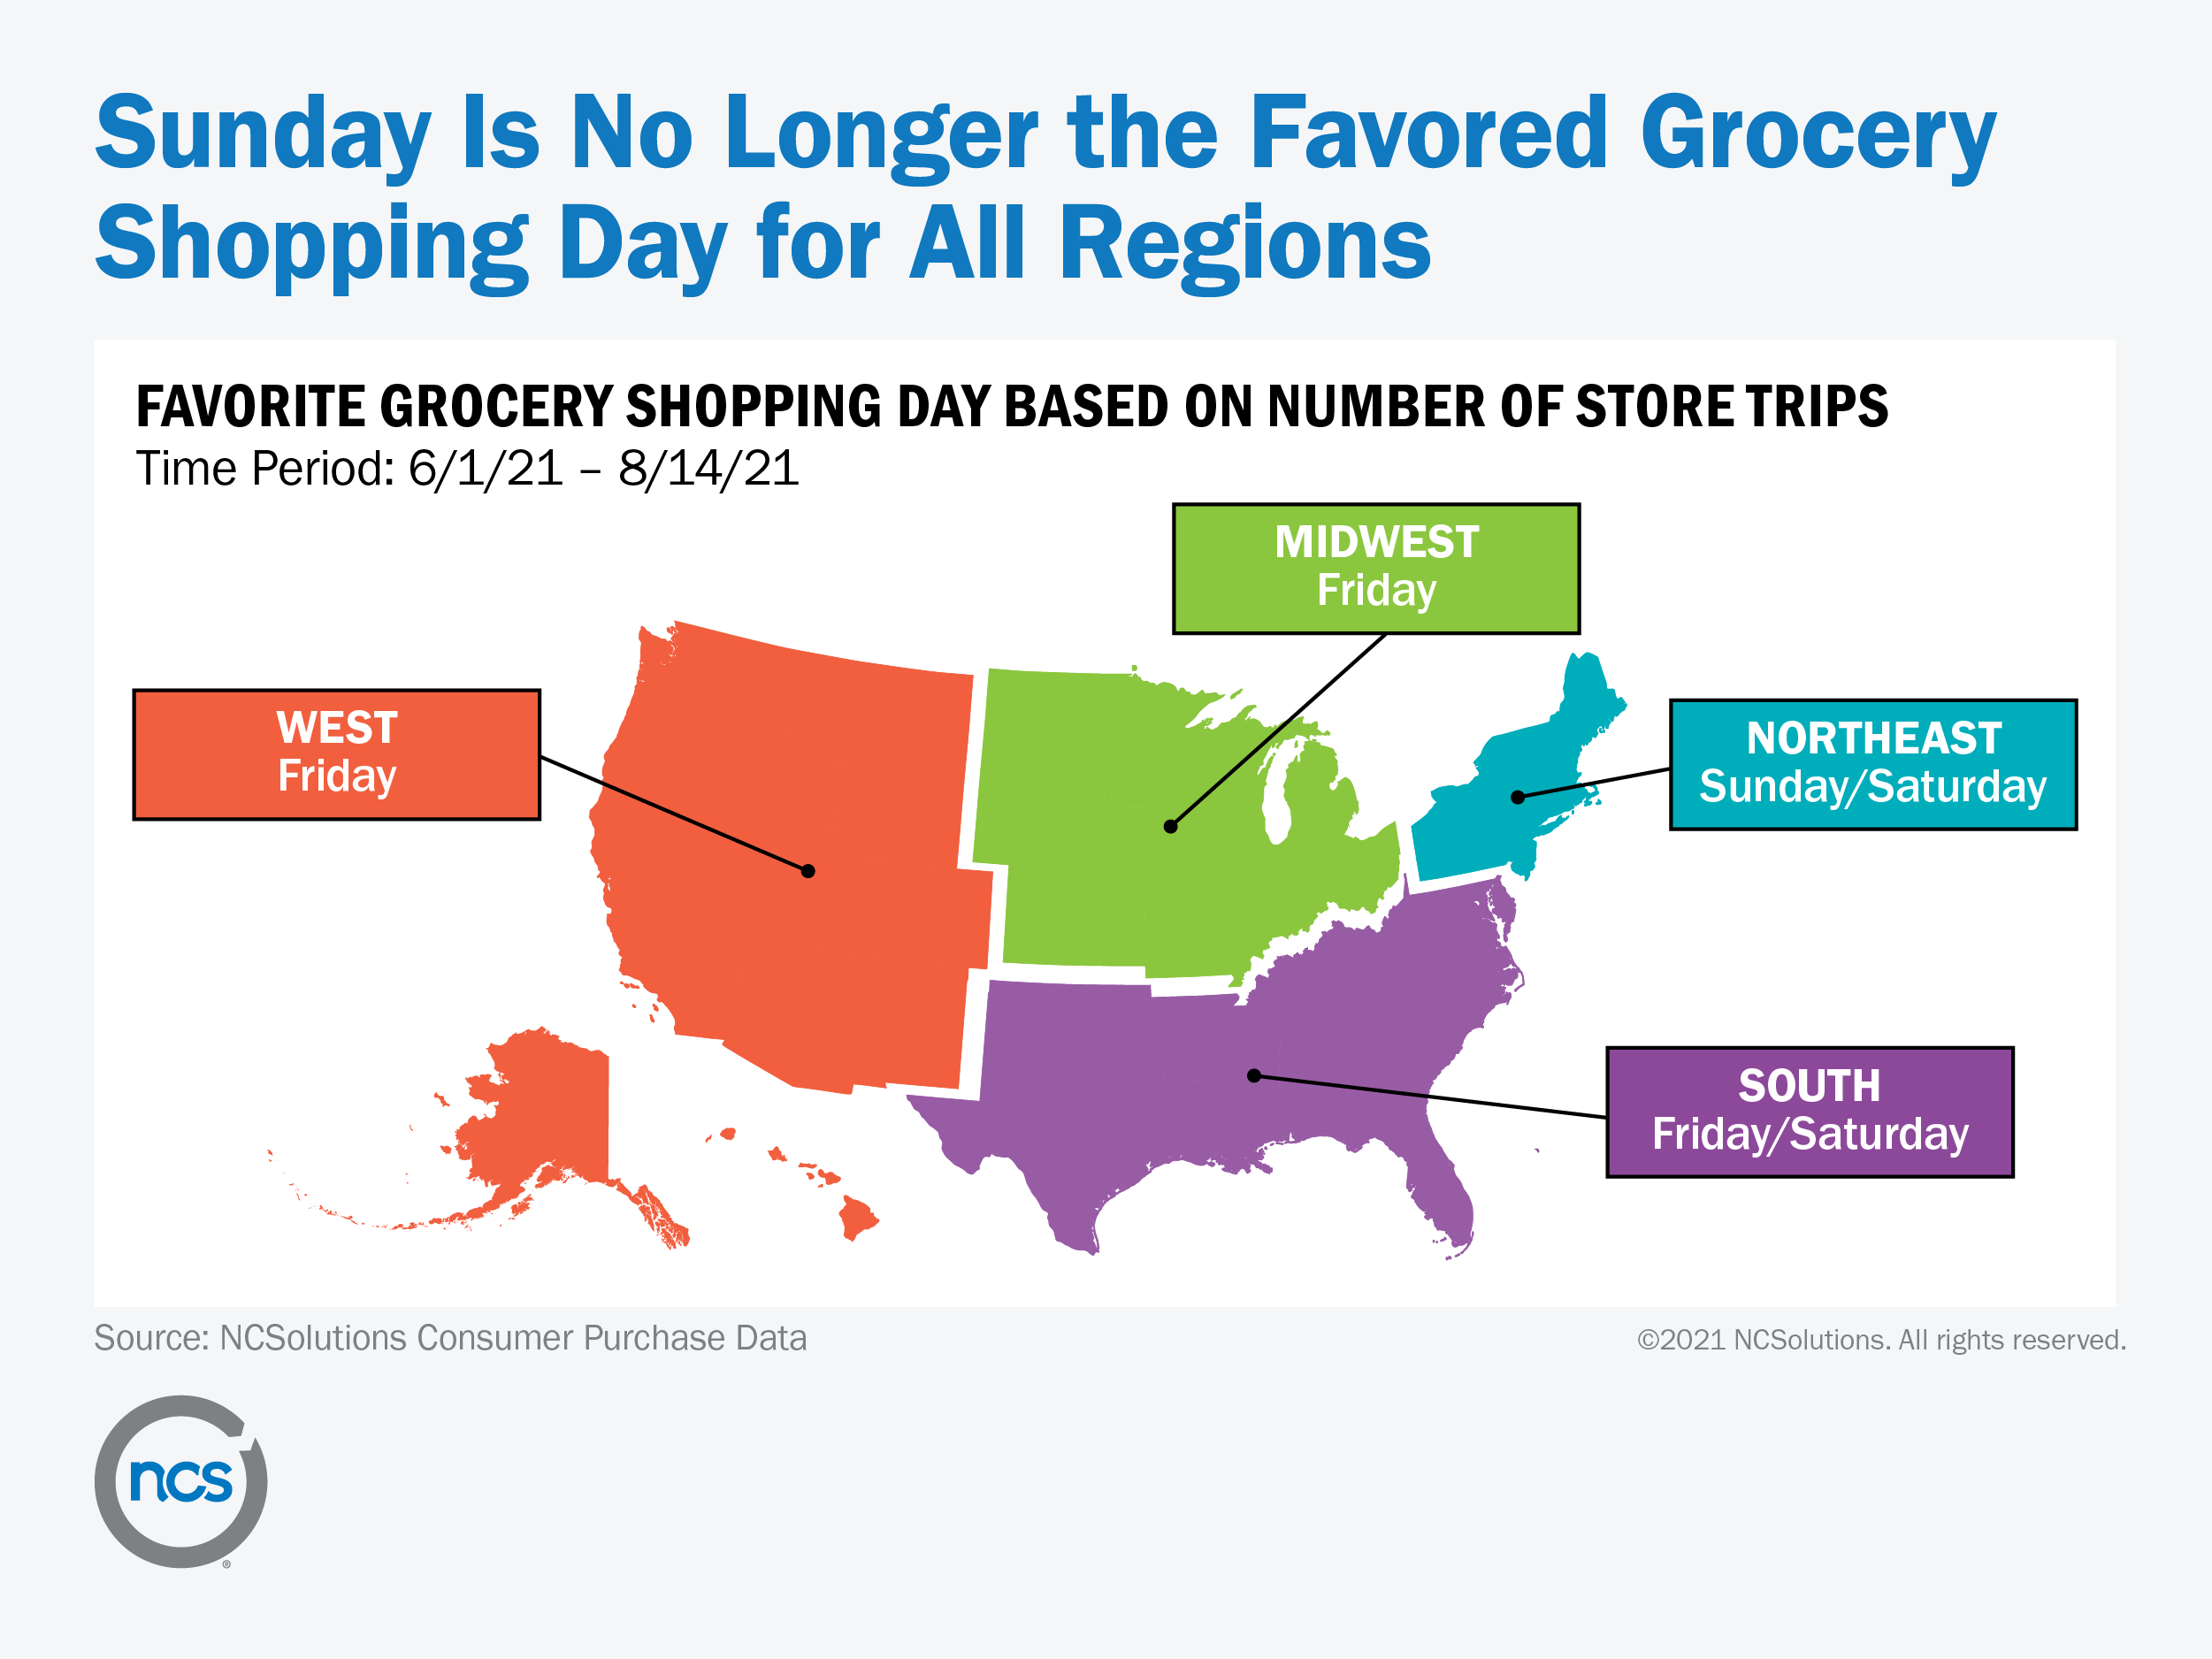 map of U.S. shows that different regions have different preferred days to grocery shop